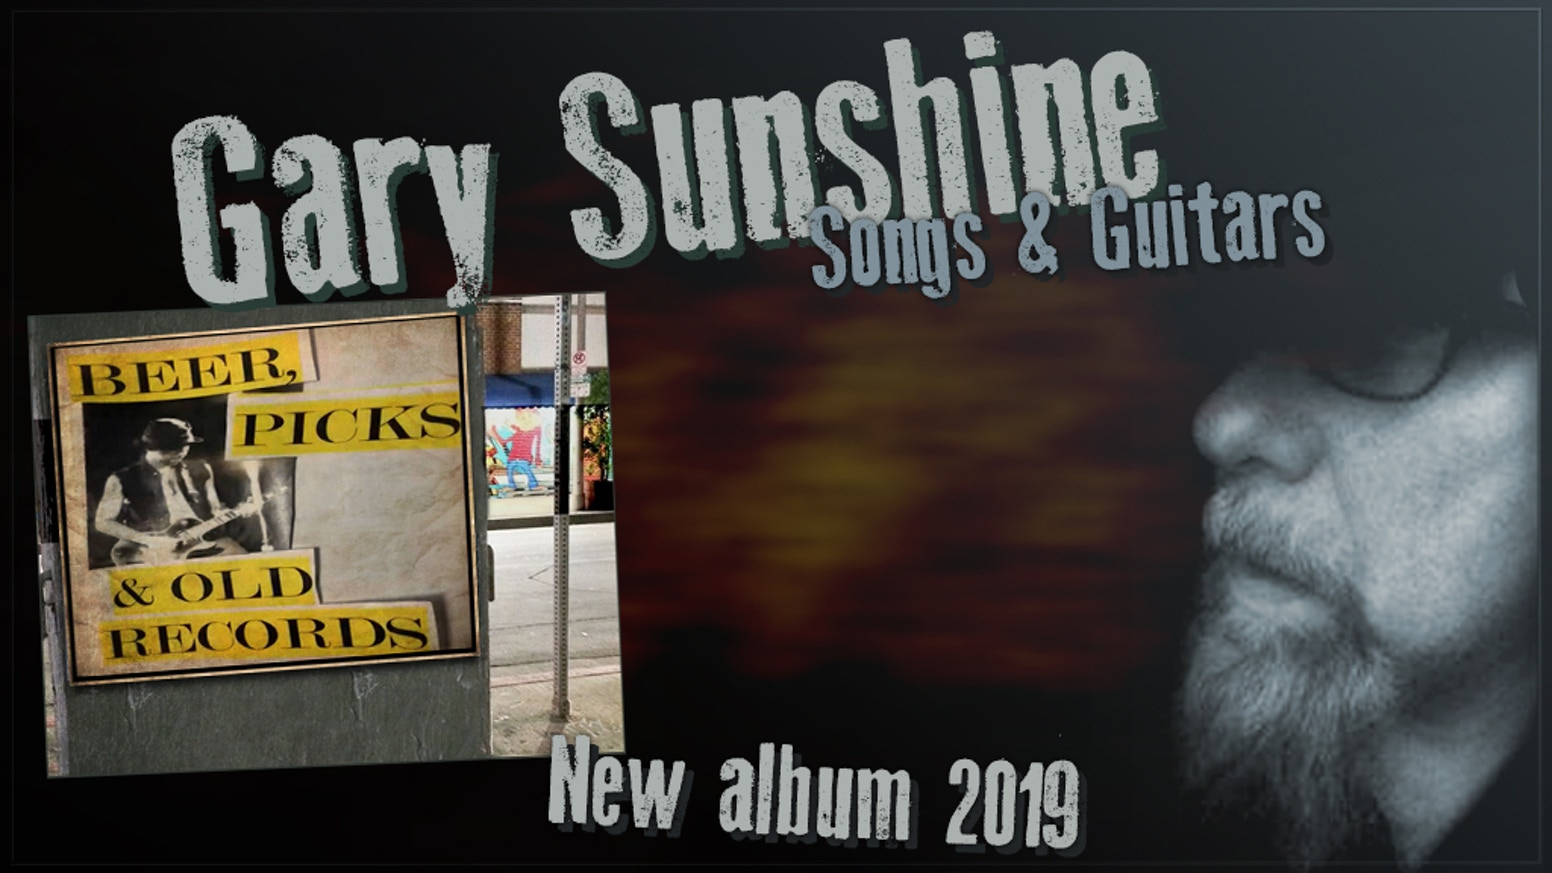 Gary Sunshine - Beer, Picks & Old Records by Gary Sunshine